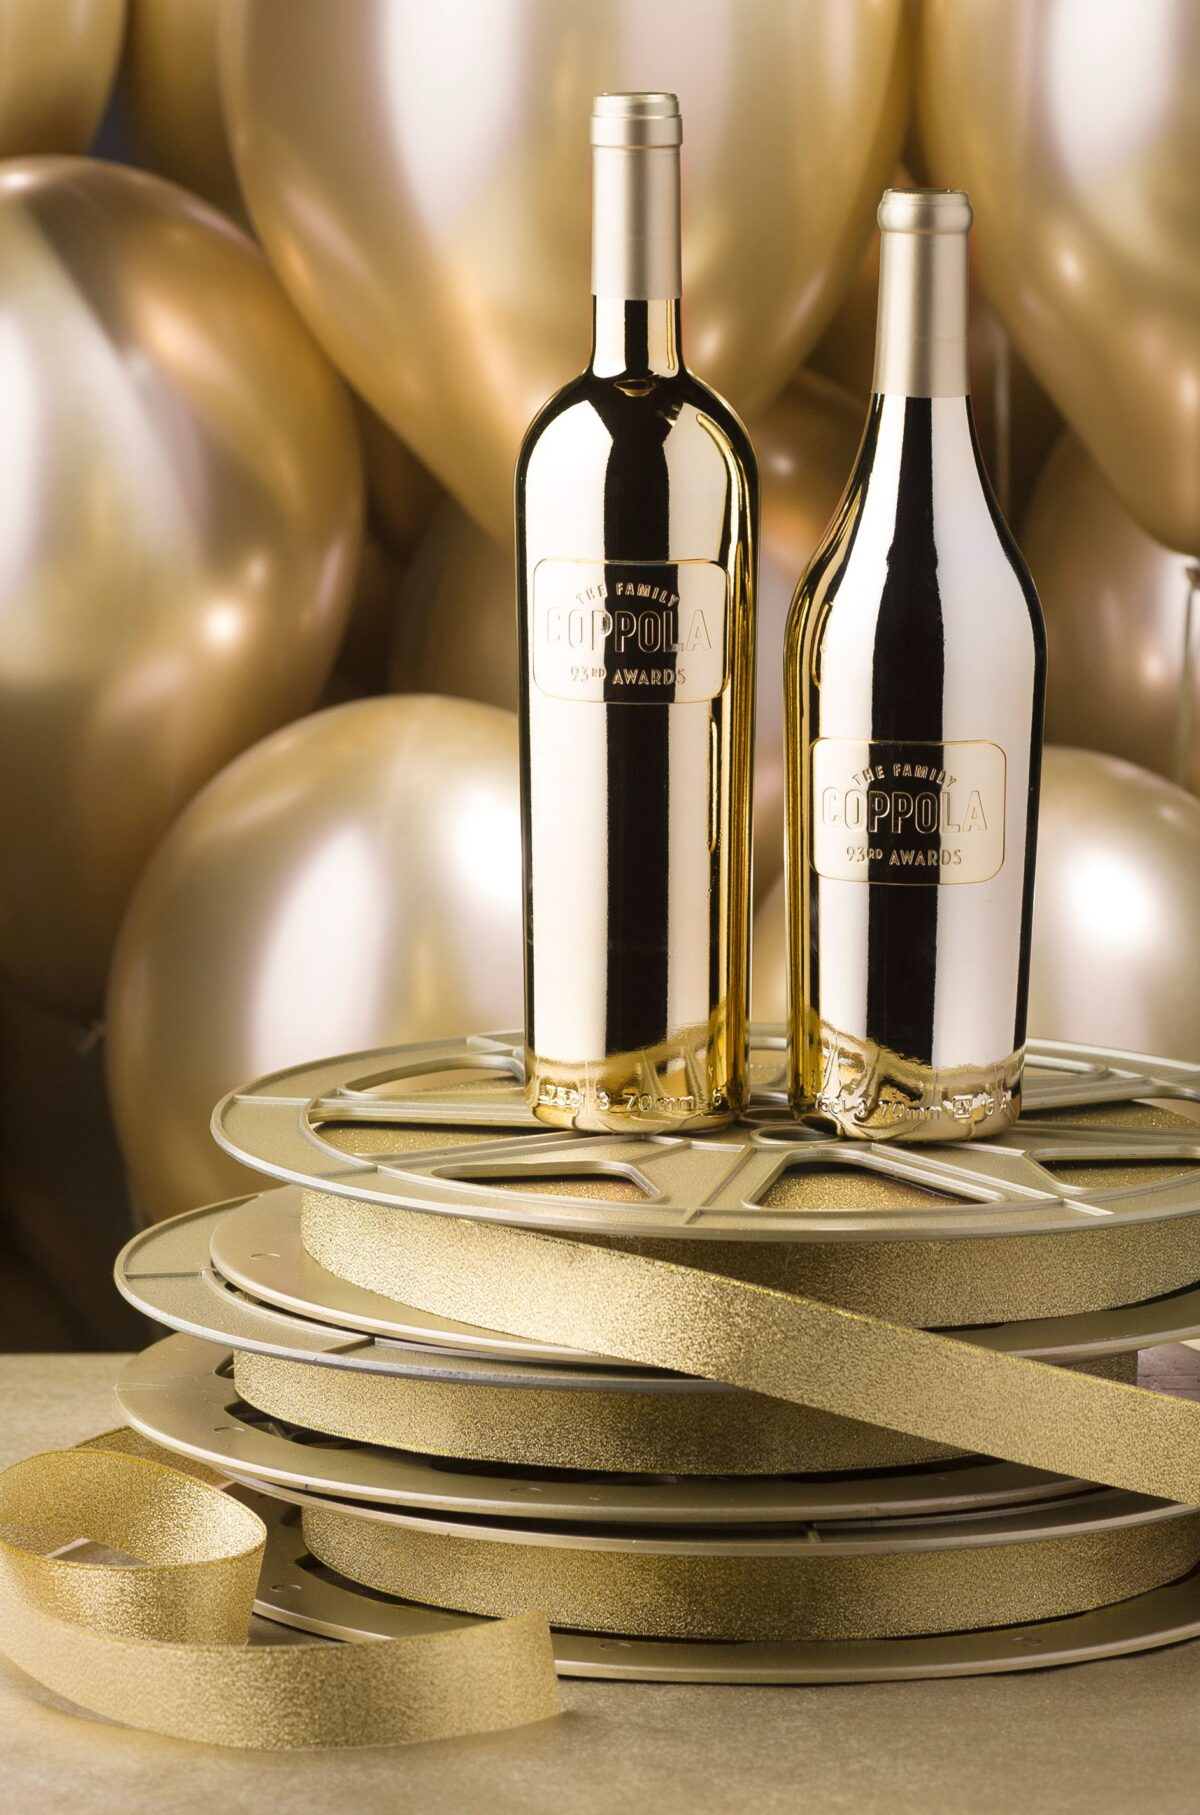 Francis Ford Coppola Winery celebrates the 93rd Academy Awards with two limited edition wines produced by Bottega S.p.A.